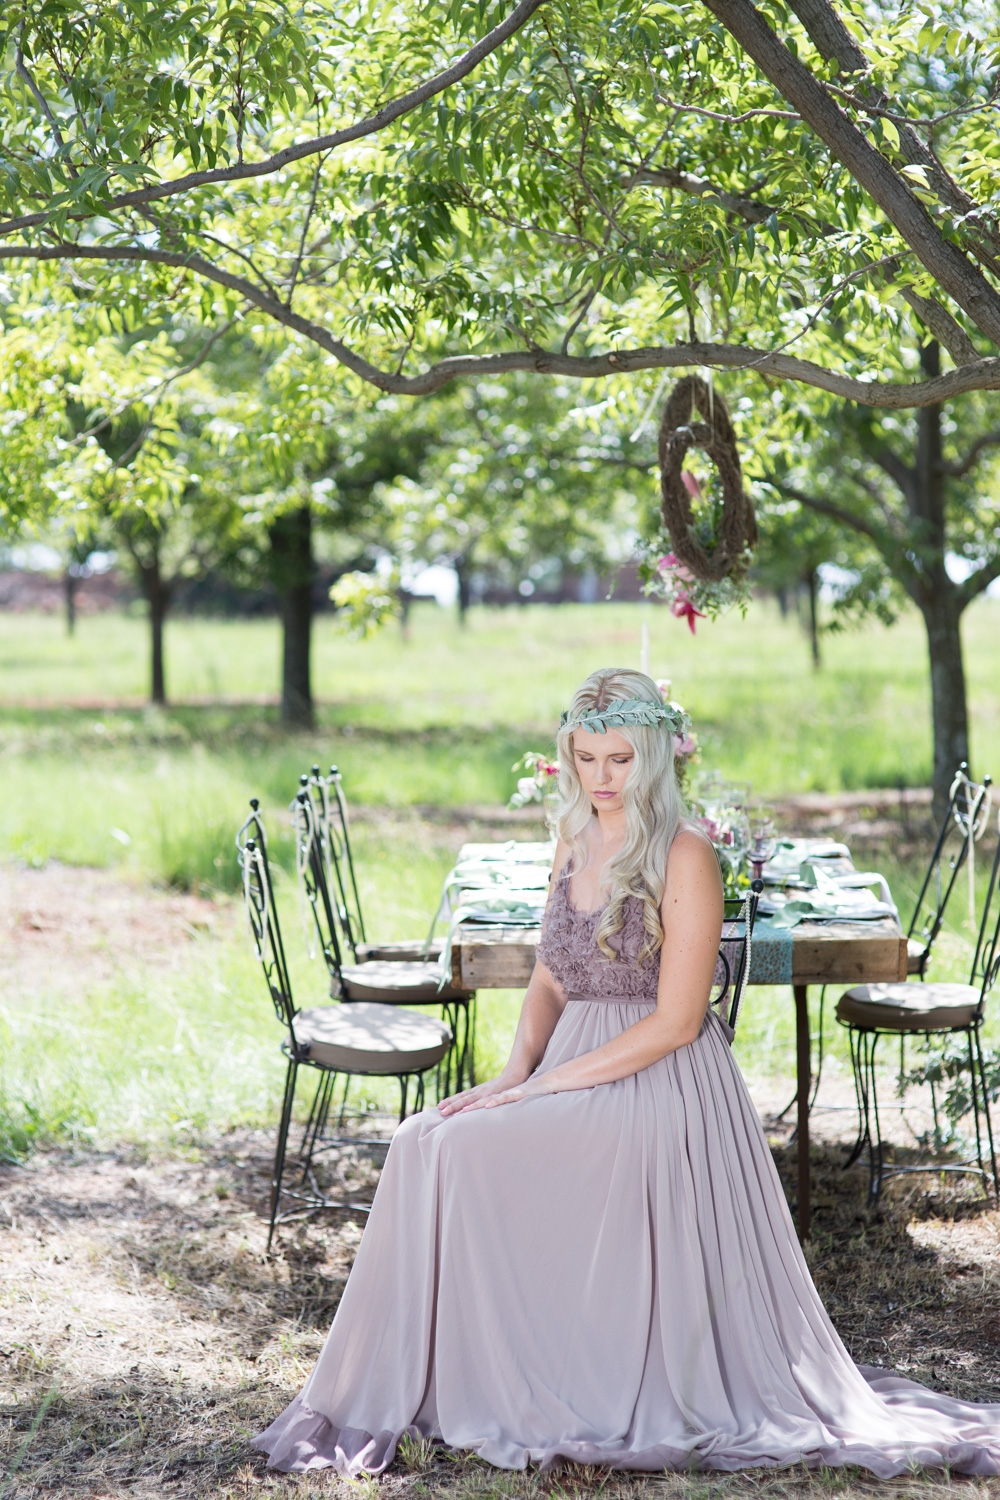 Shokran pretoria wedding venue shoot025.jpg